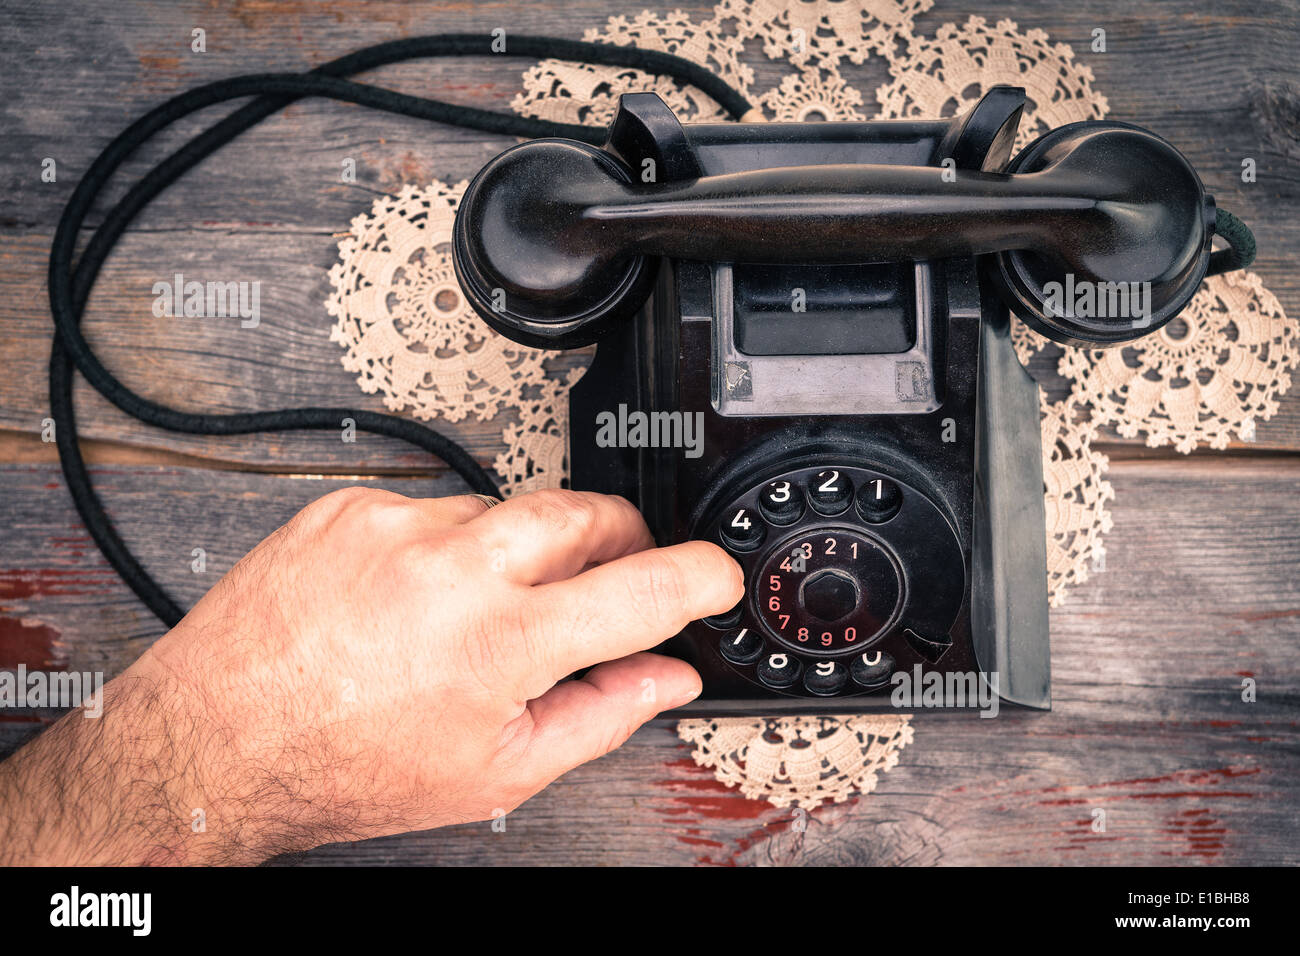 Man making call on rotary telephone dialing the numbers with his finger high angle view of the instrument on an old wooden table - Stock Image